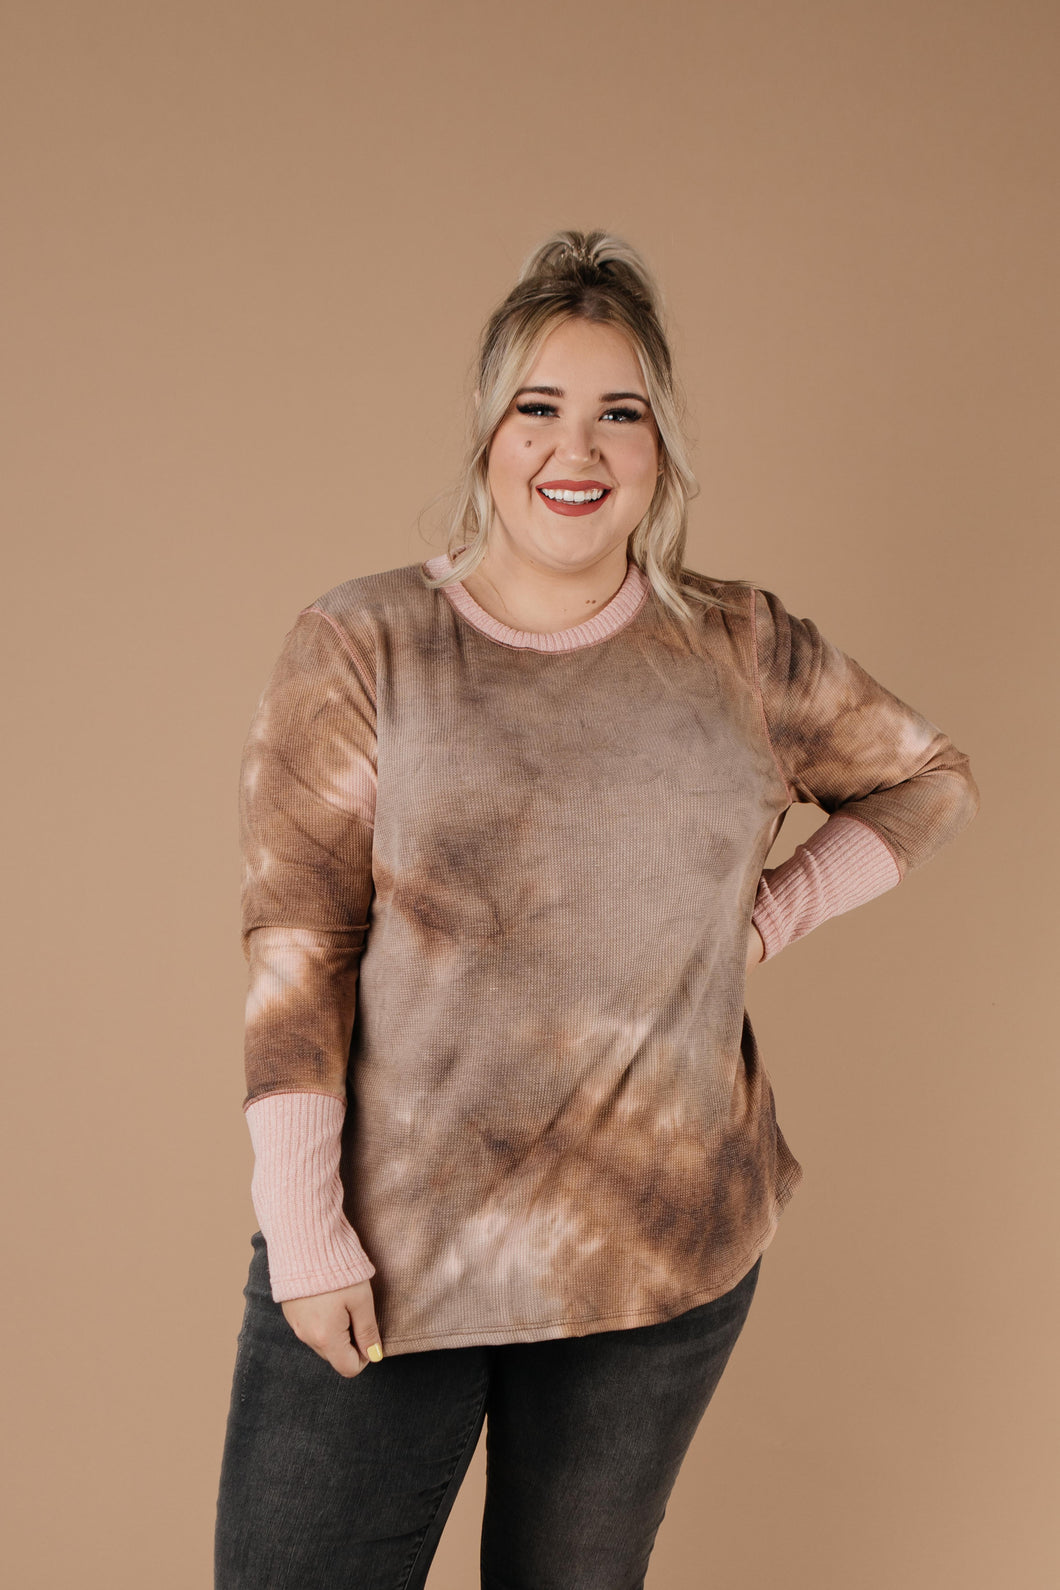 New Neutrals Tie Dye Top - Smith & Vena Online Boutique